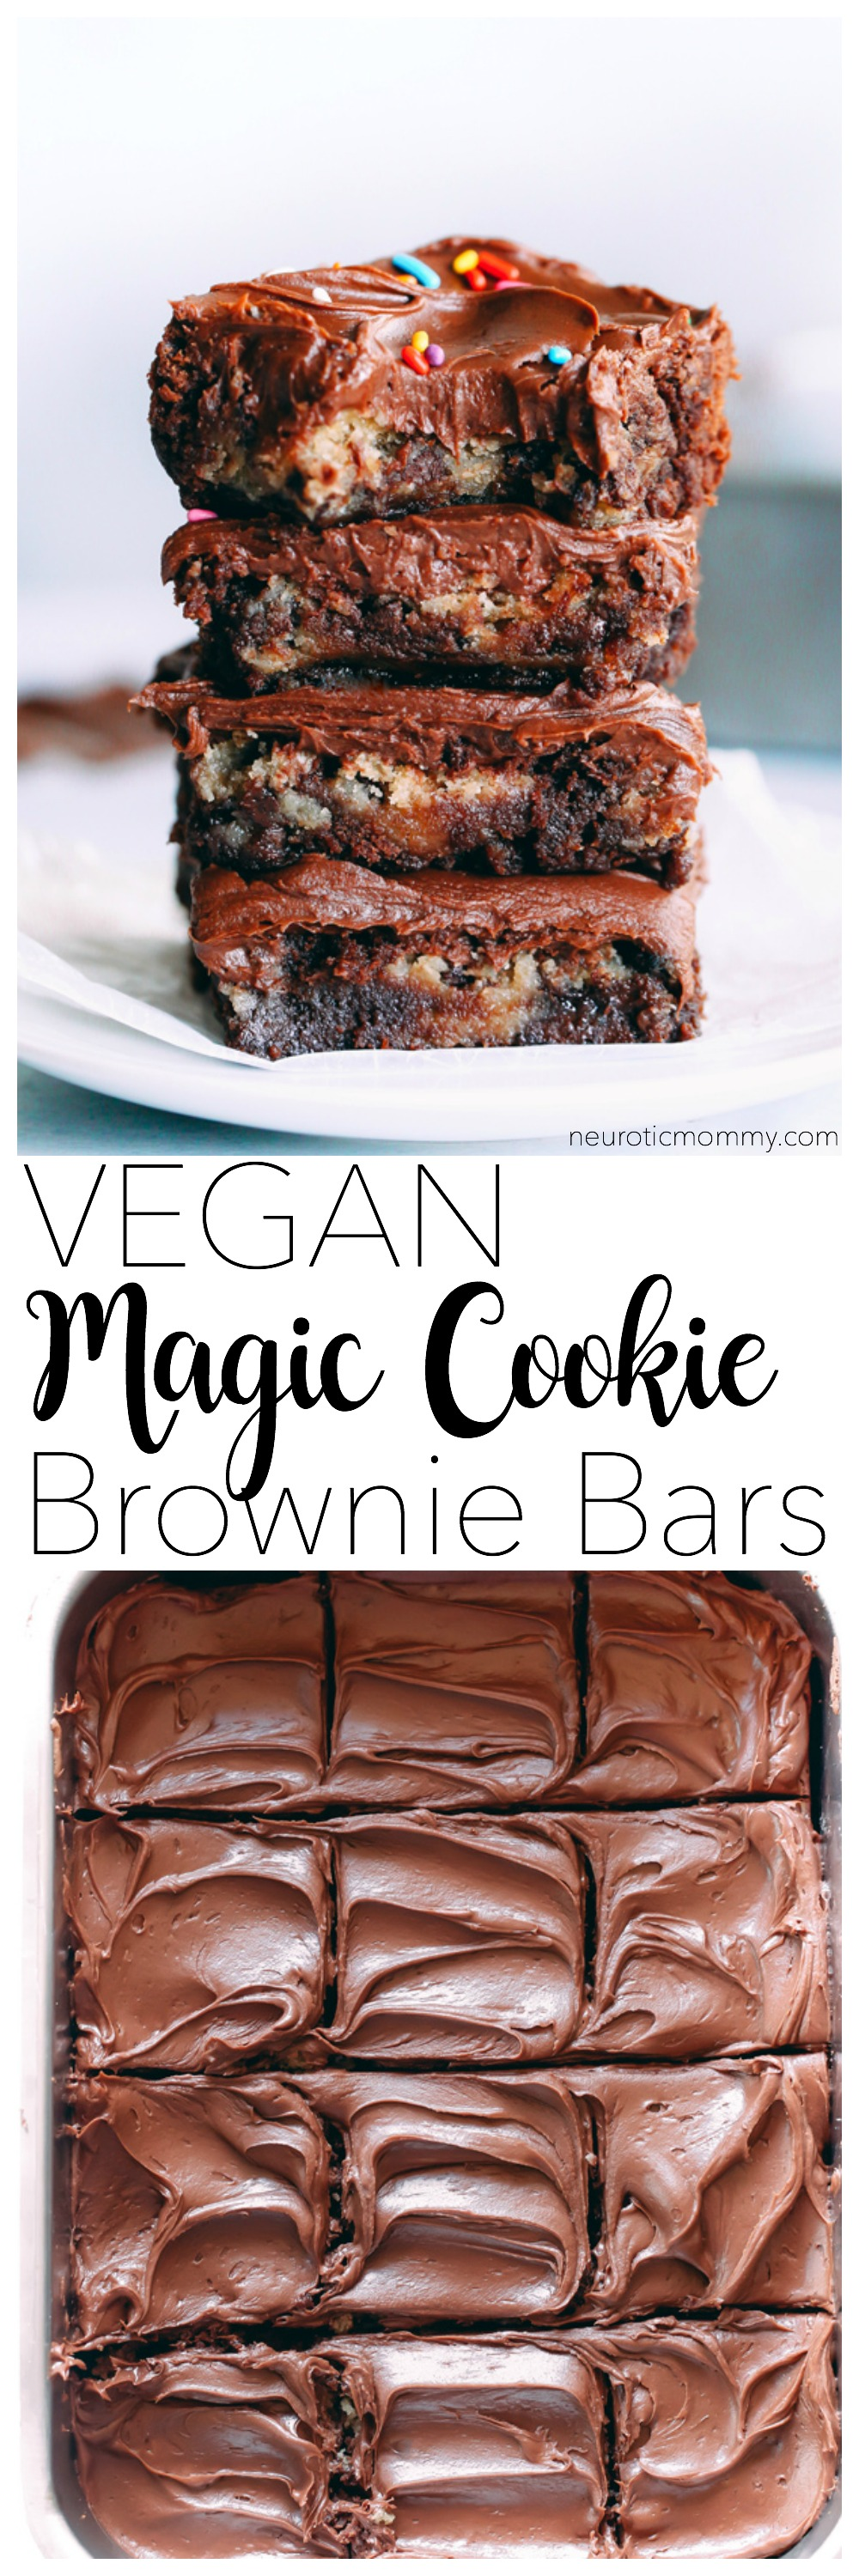 Vegan Magic Cookie Brownie Bars are my go to lazy mom make. They have double the delicousness where cookie dough meets brownie becoming one. Topped with a delicious chocolate ganache and sprinkles! NeuroticMommy.com